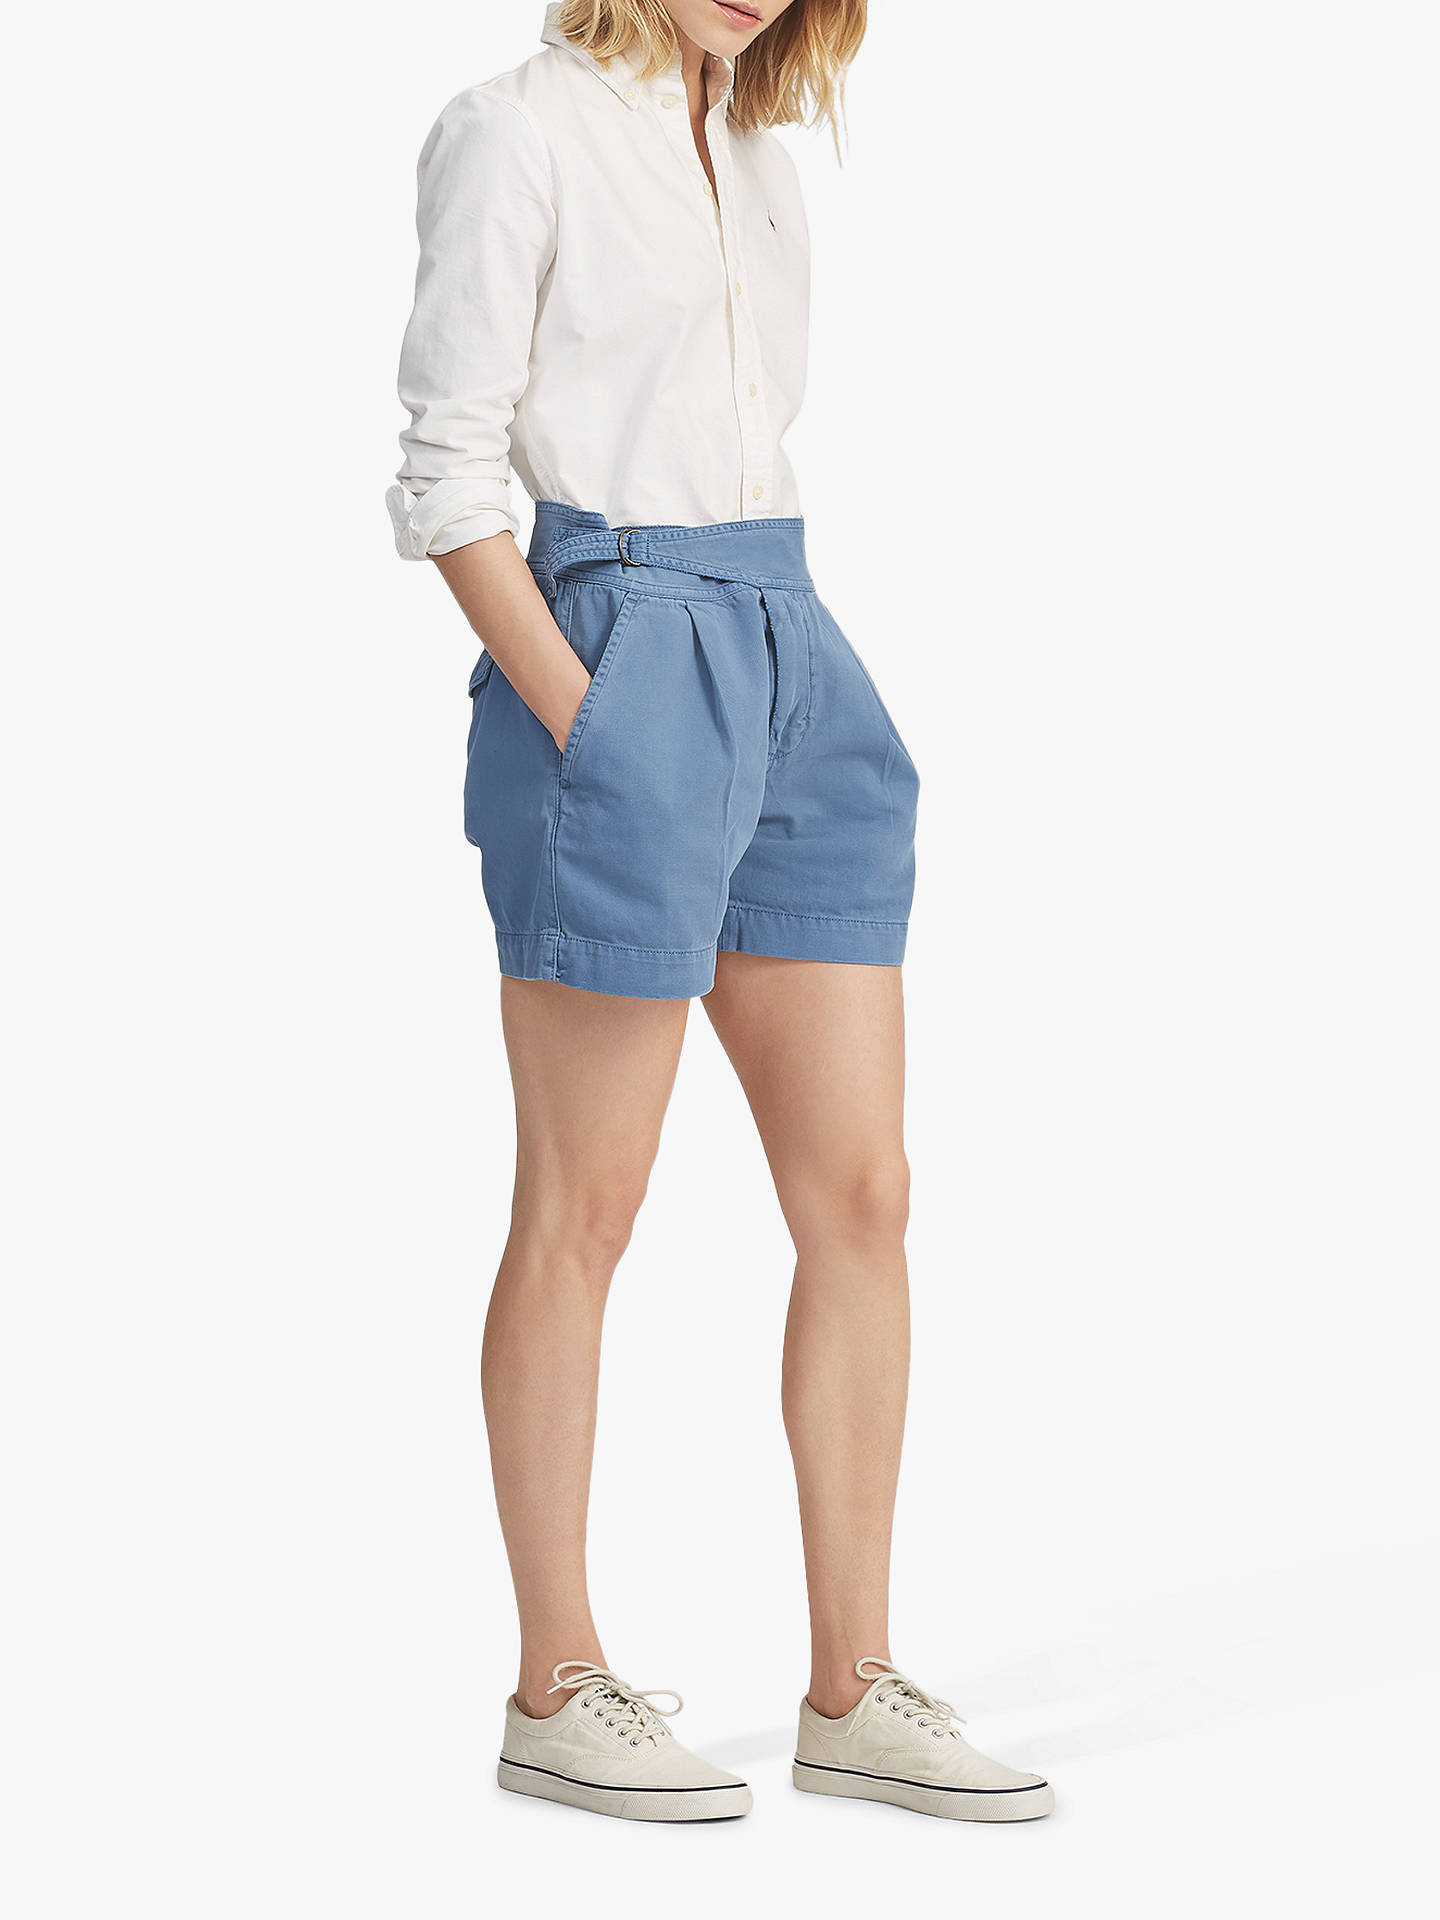 soft and light big selection look for Polo Ralph Lauren Chino Shorts, Capri Blue at John Lewis ...